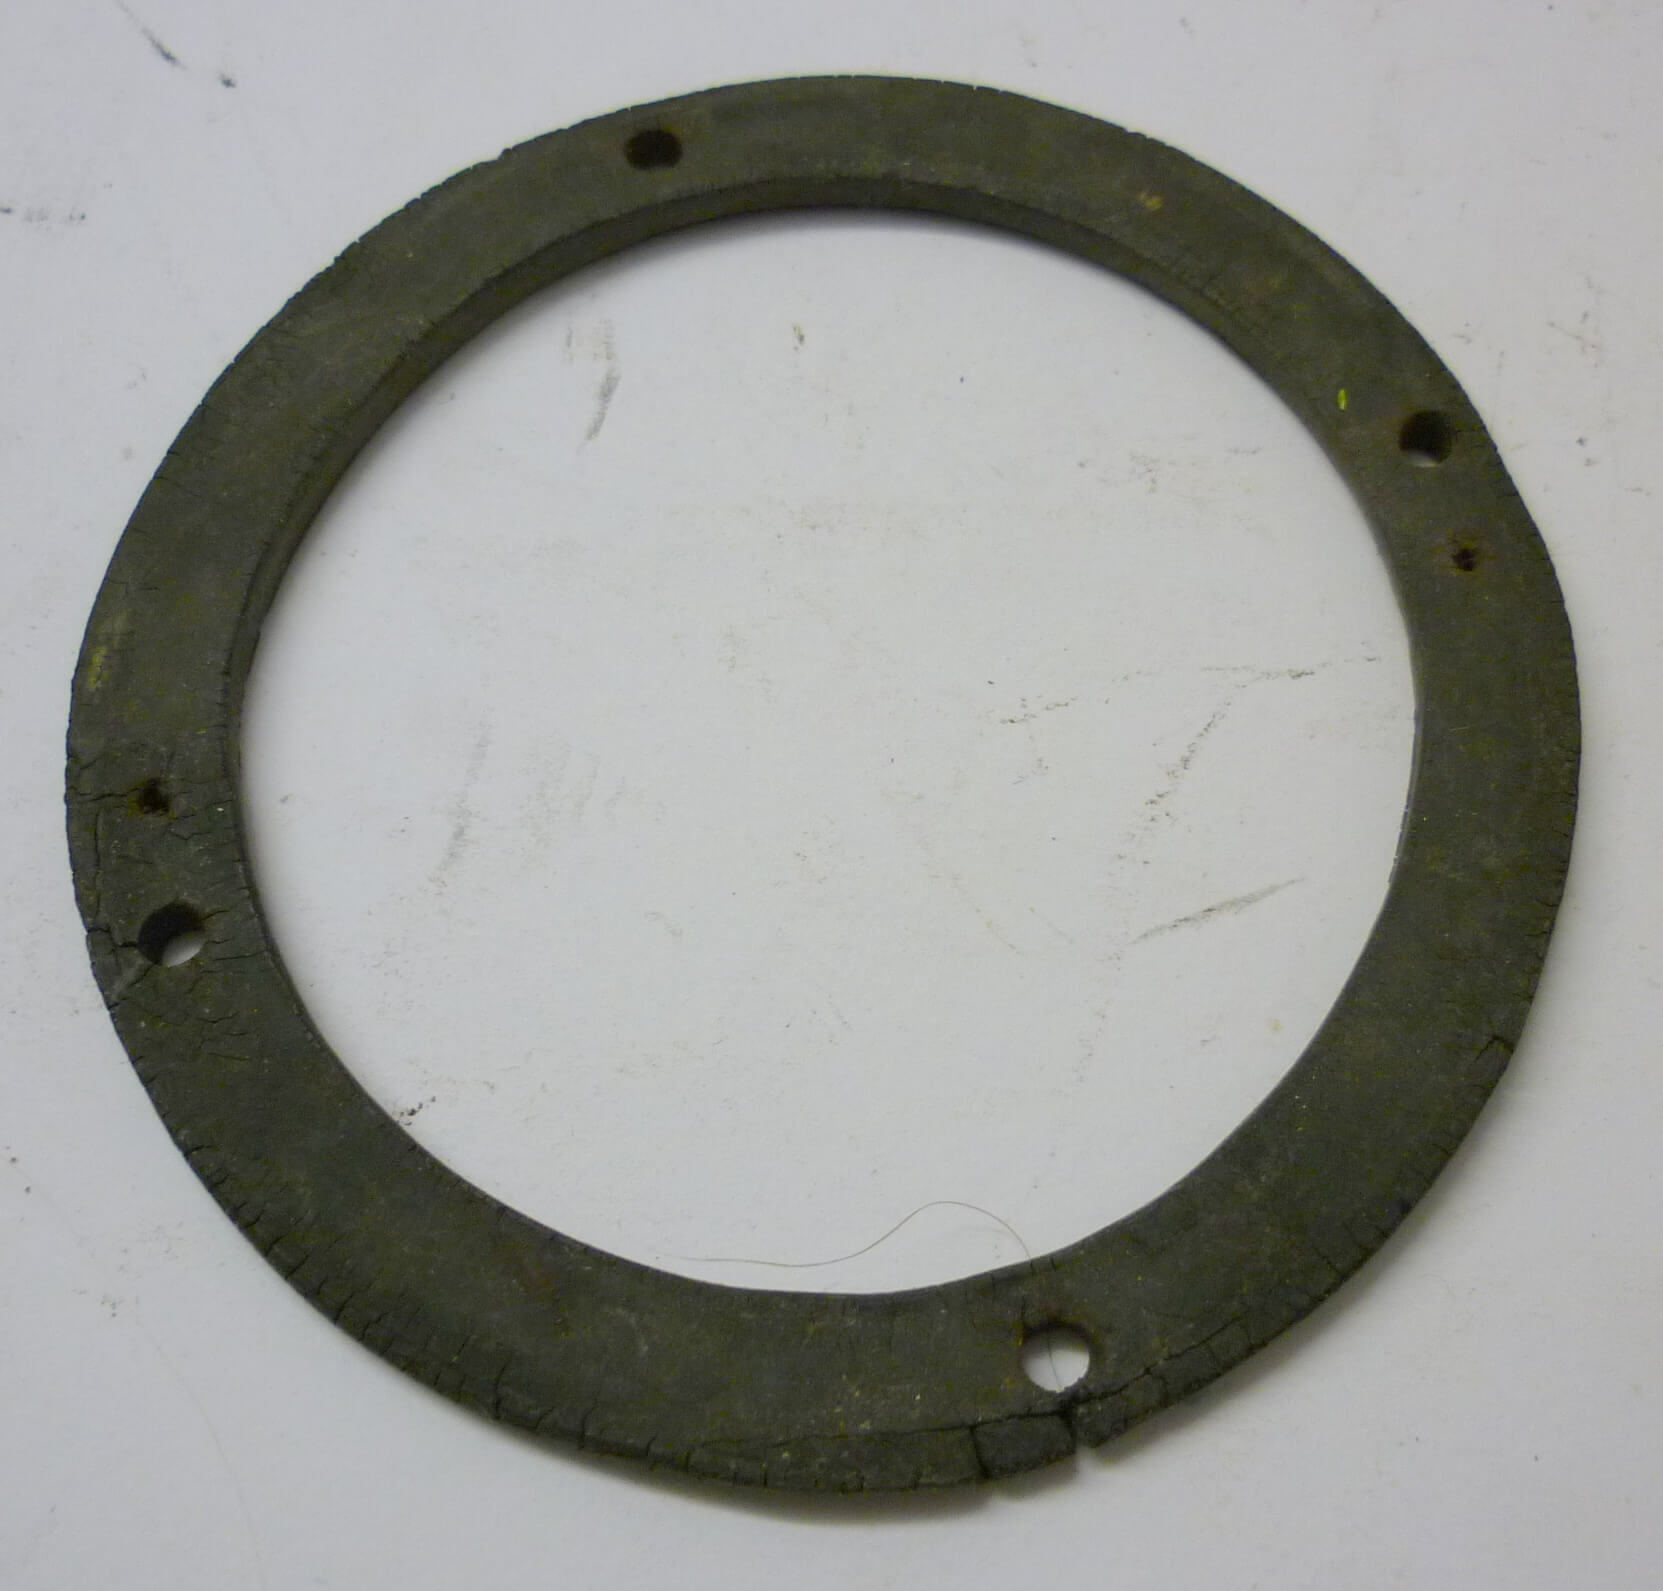 Gasket for horn, 4 mm, black, Vespa Rally / Sprint German modell, used